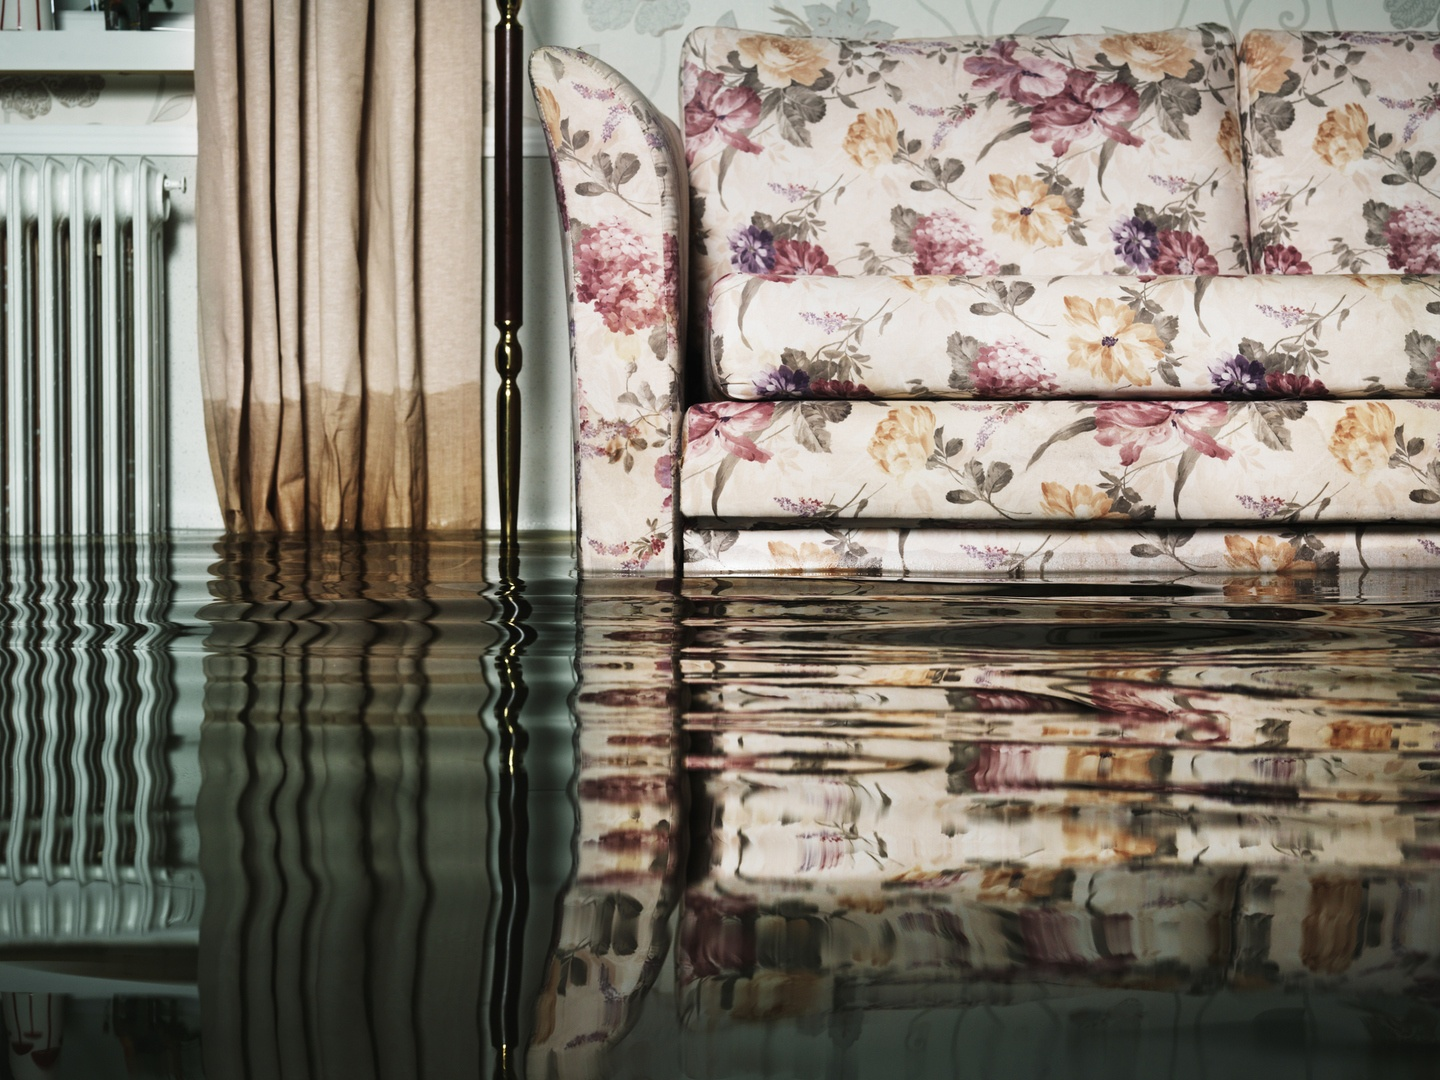 Your Home Insurance Doesn't Cover Flooding — And More Hurricanes Are Coming